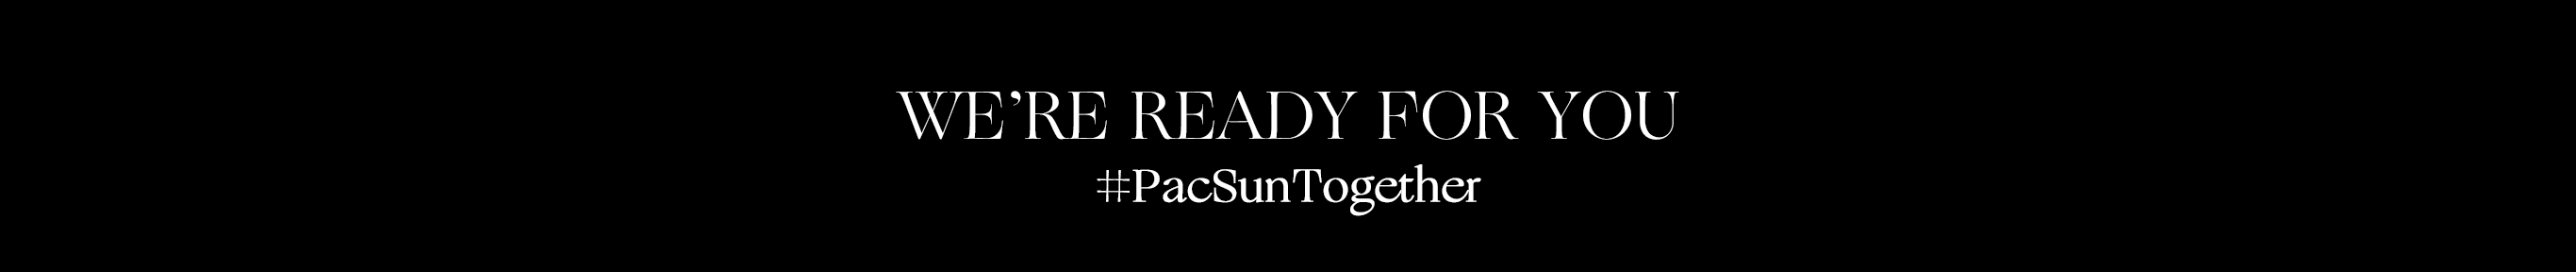 WE'RE READY FOR YOU #PacSunTogether